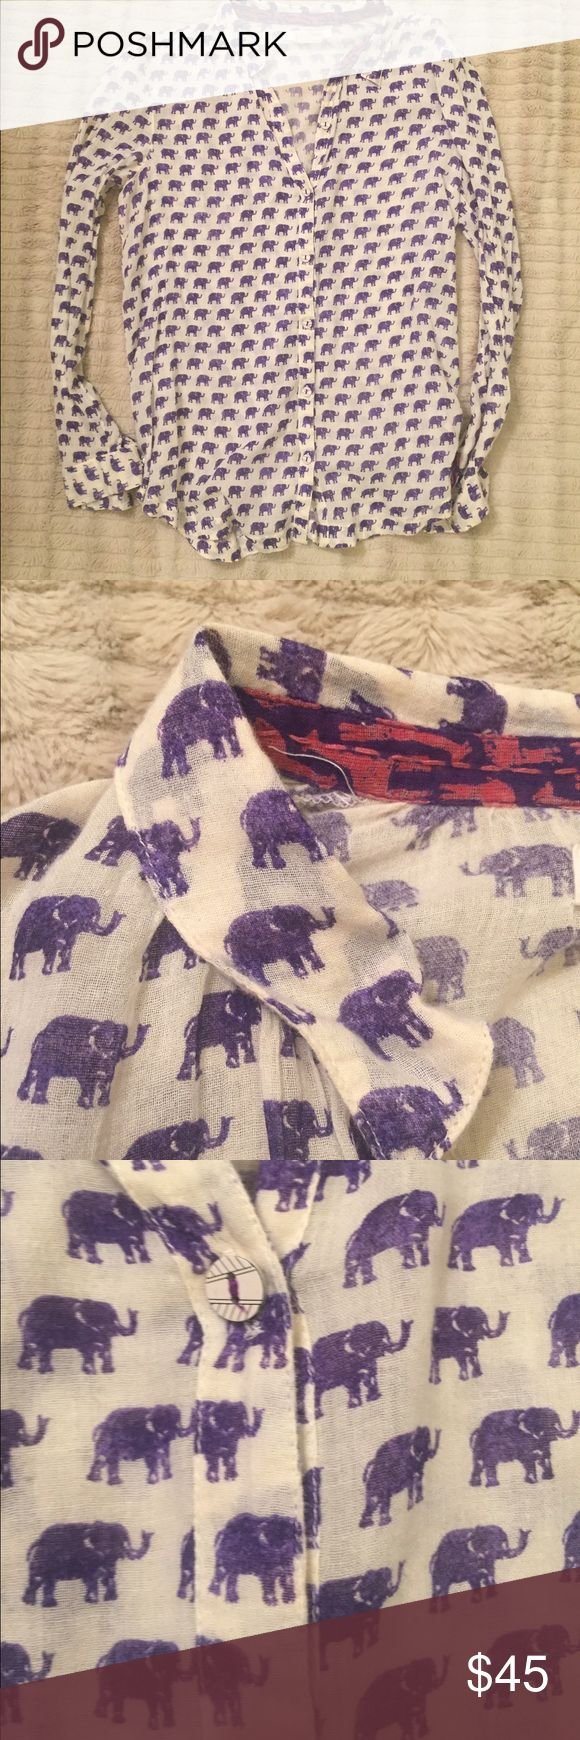 Anthropologie Elephant Shirt Lightweight button down shirt with purple elephants. Perfect for summer weather and a pop of color. Anthropologie Tops Button Down Shirts